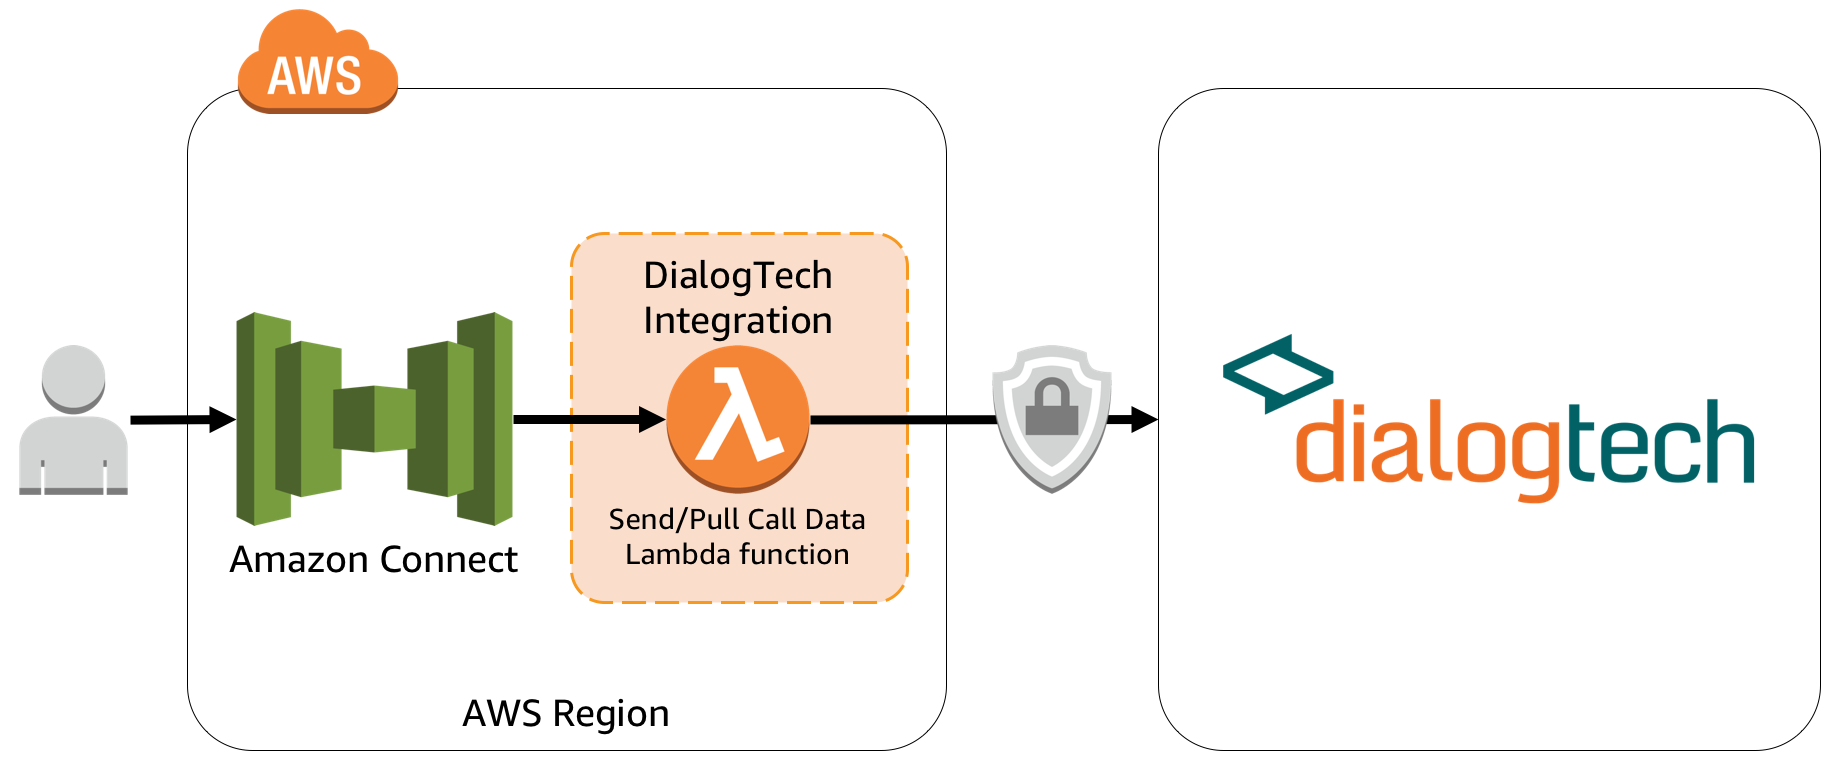 DialogTech - Amazon Connect integration